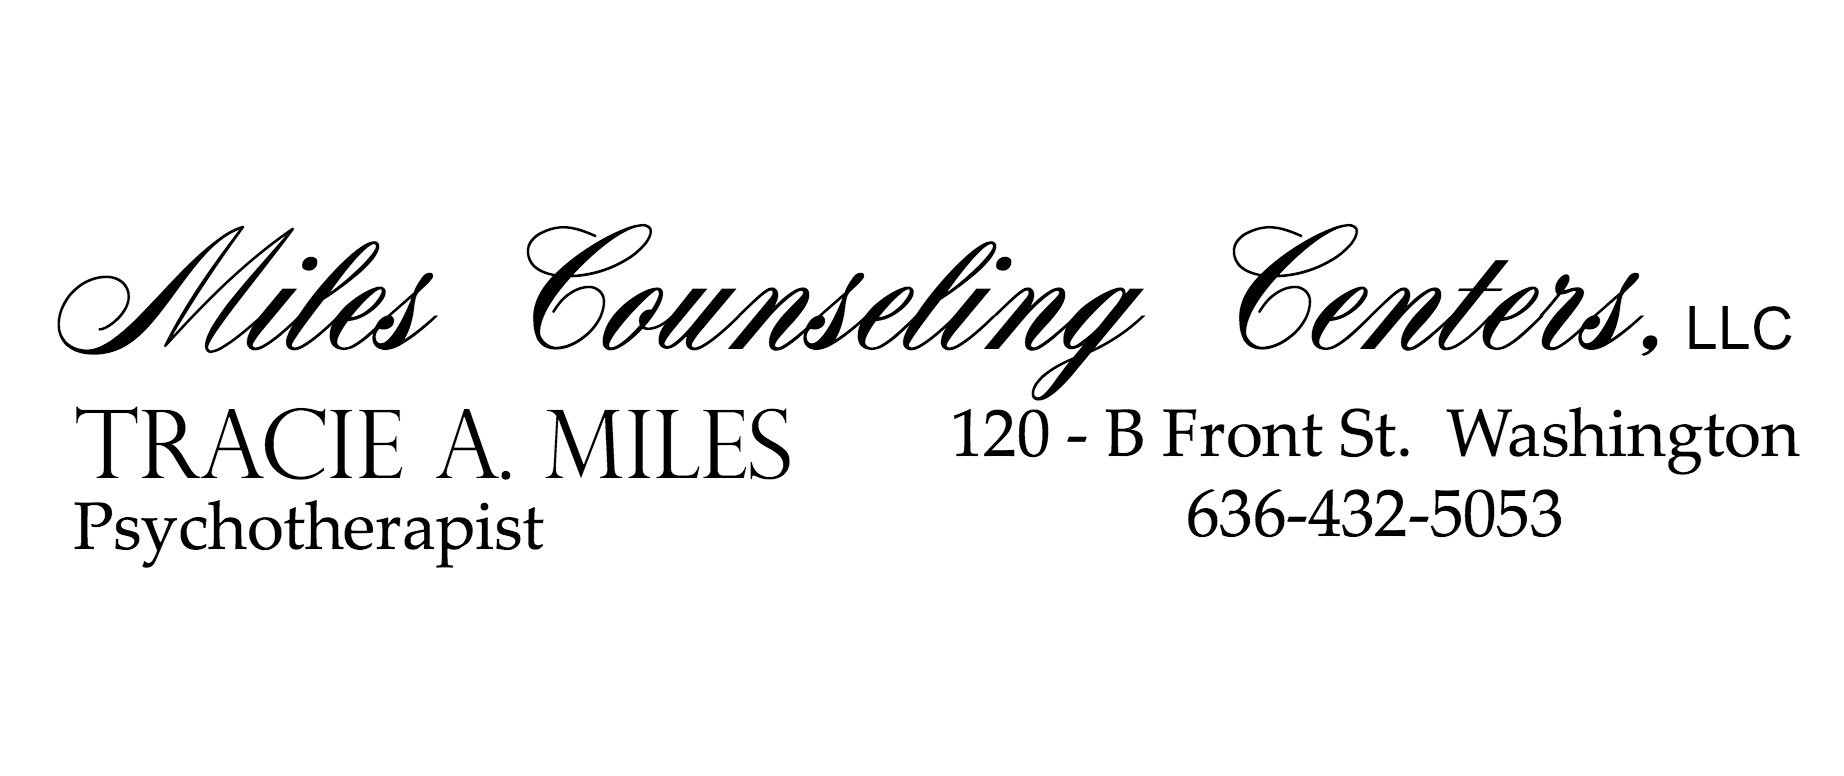 Miles Counseling Centers LLC